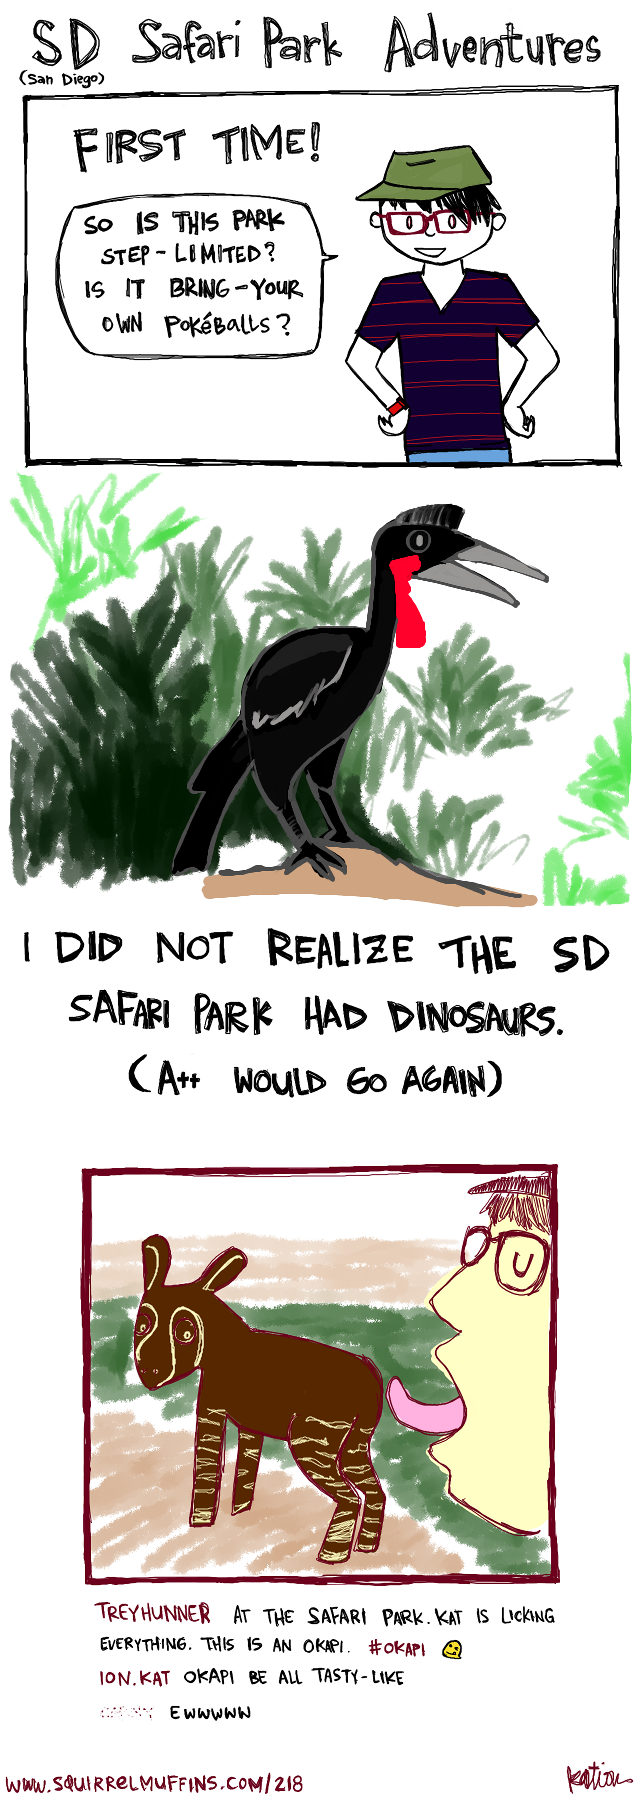 the Abyssinian Ground Hornbill is a really, really cool bird, but it would probably eat us all given the chance